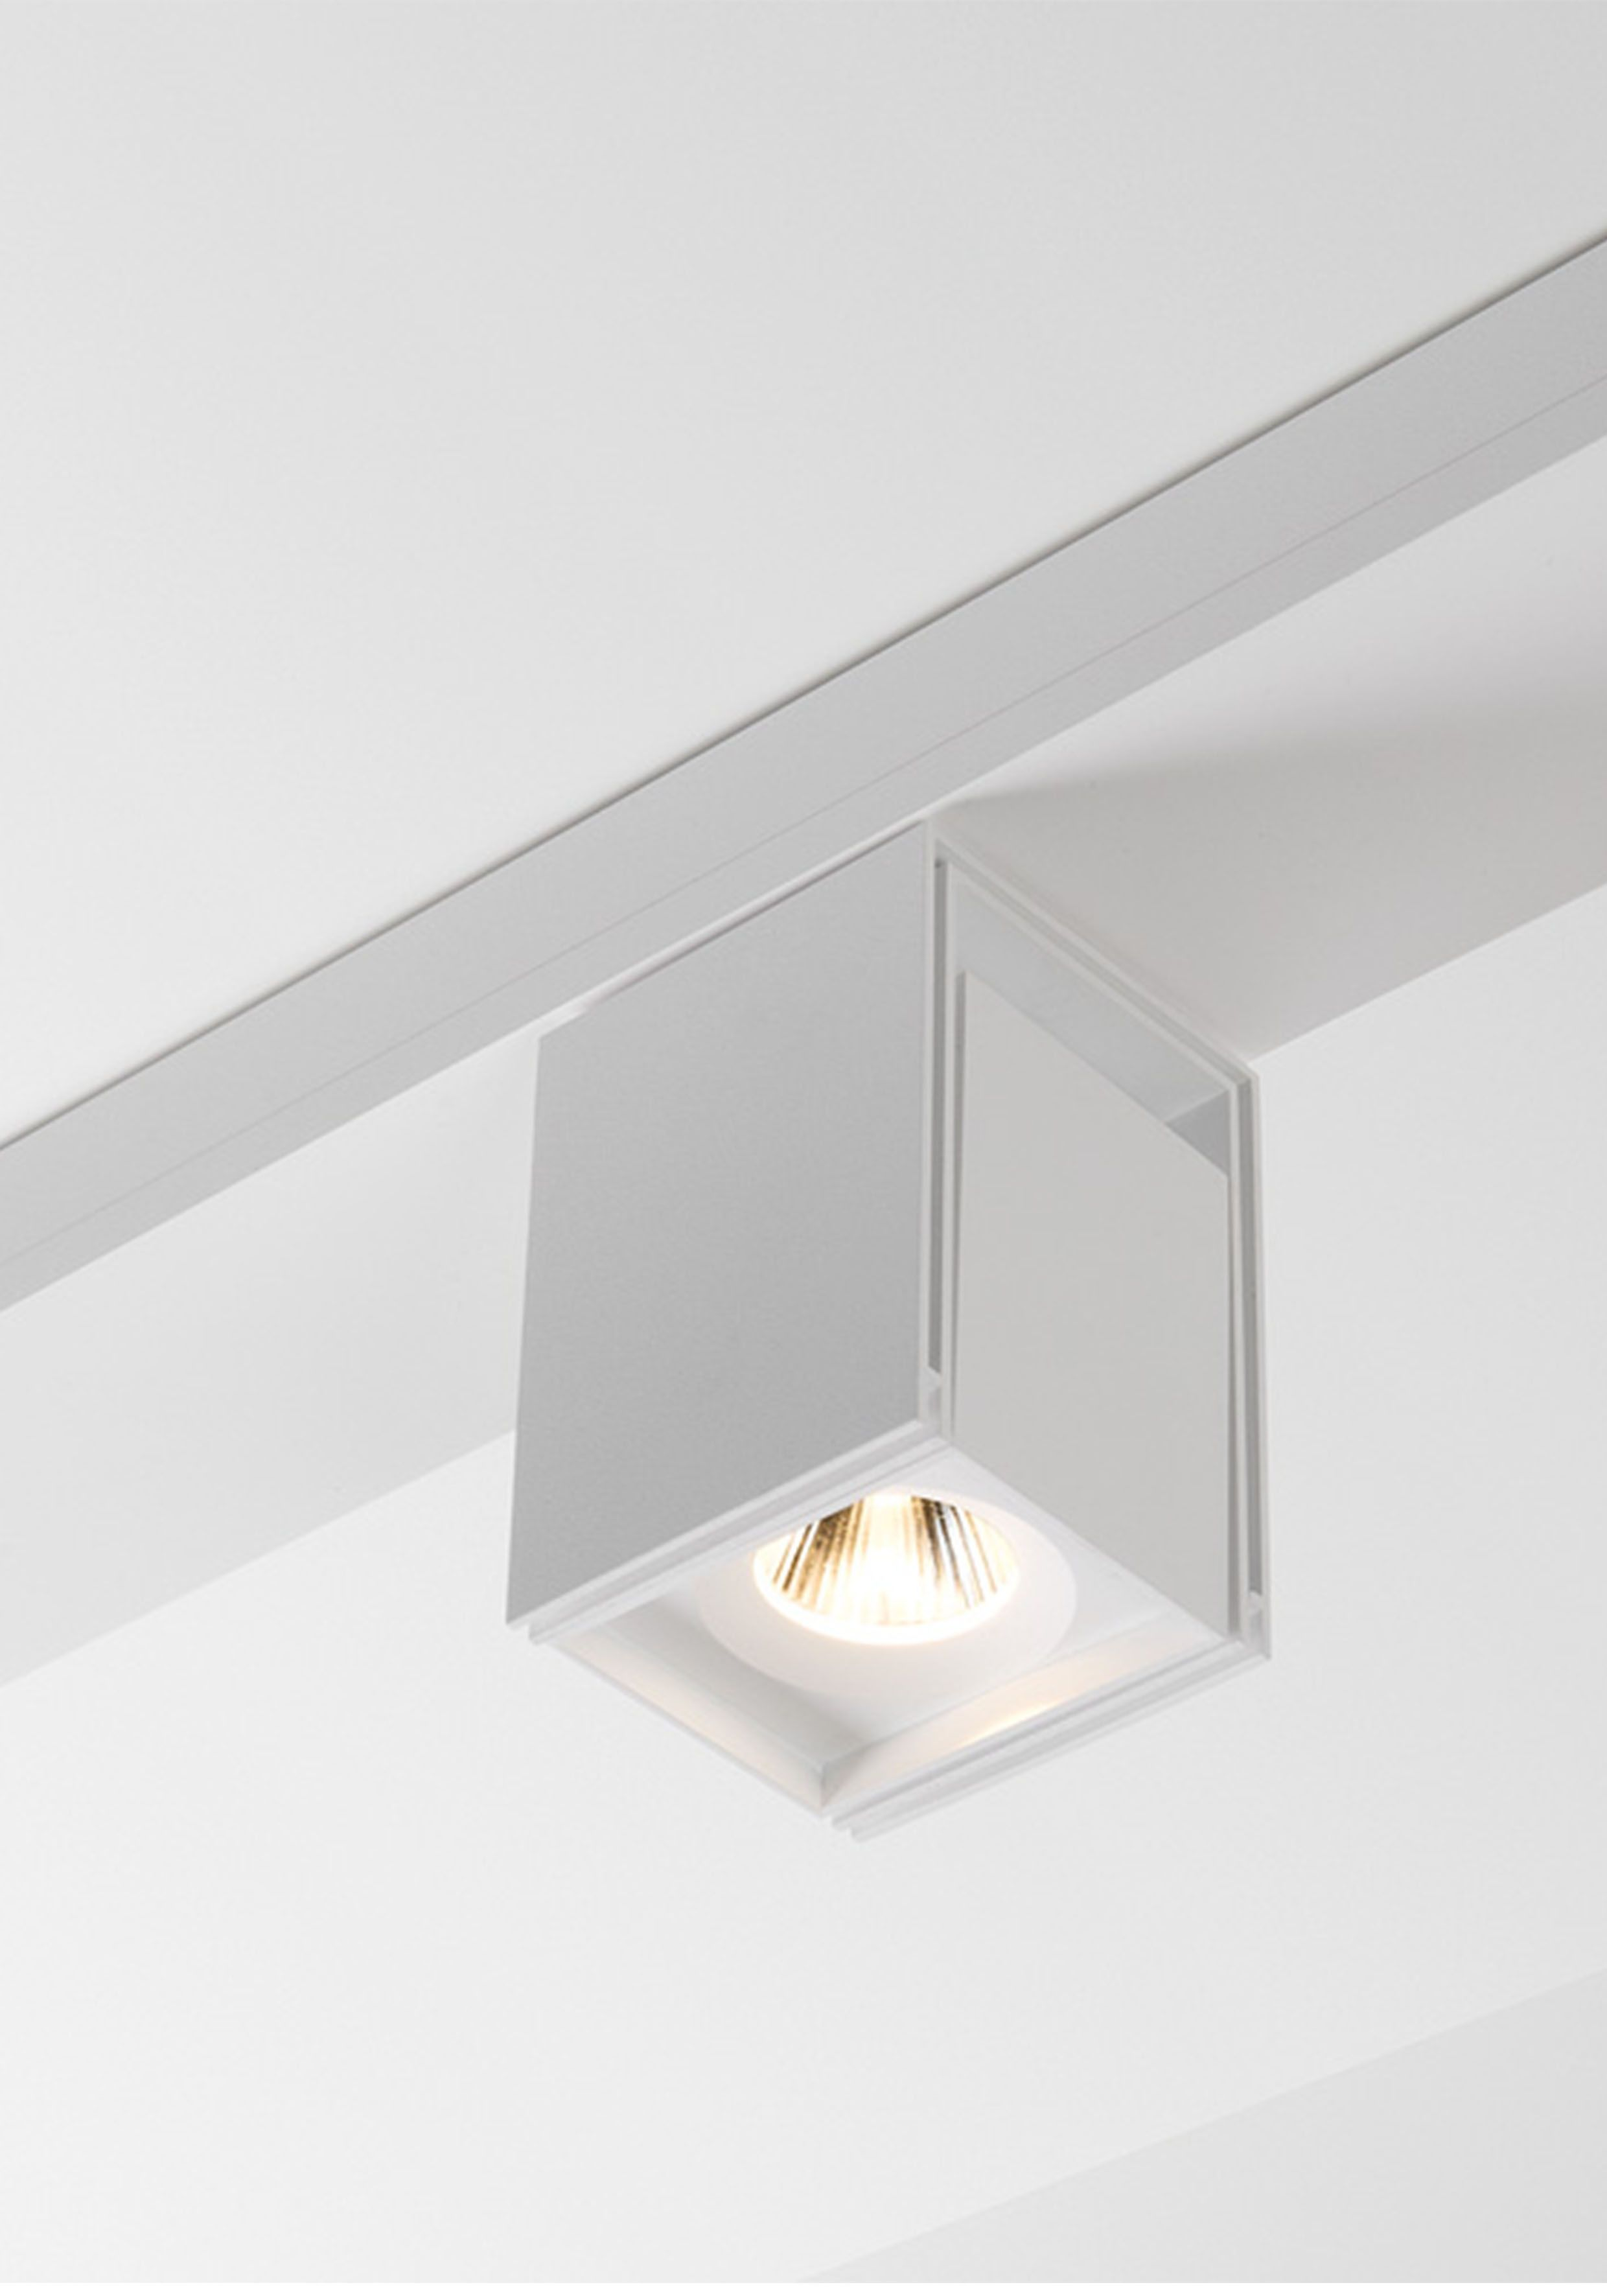 Ceiling mounted light mp78 fortimo led by modular lighting ceiling mounted light mp78 fortimo led by modular lighting mozeypictures Choice Image